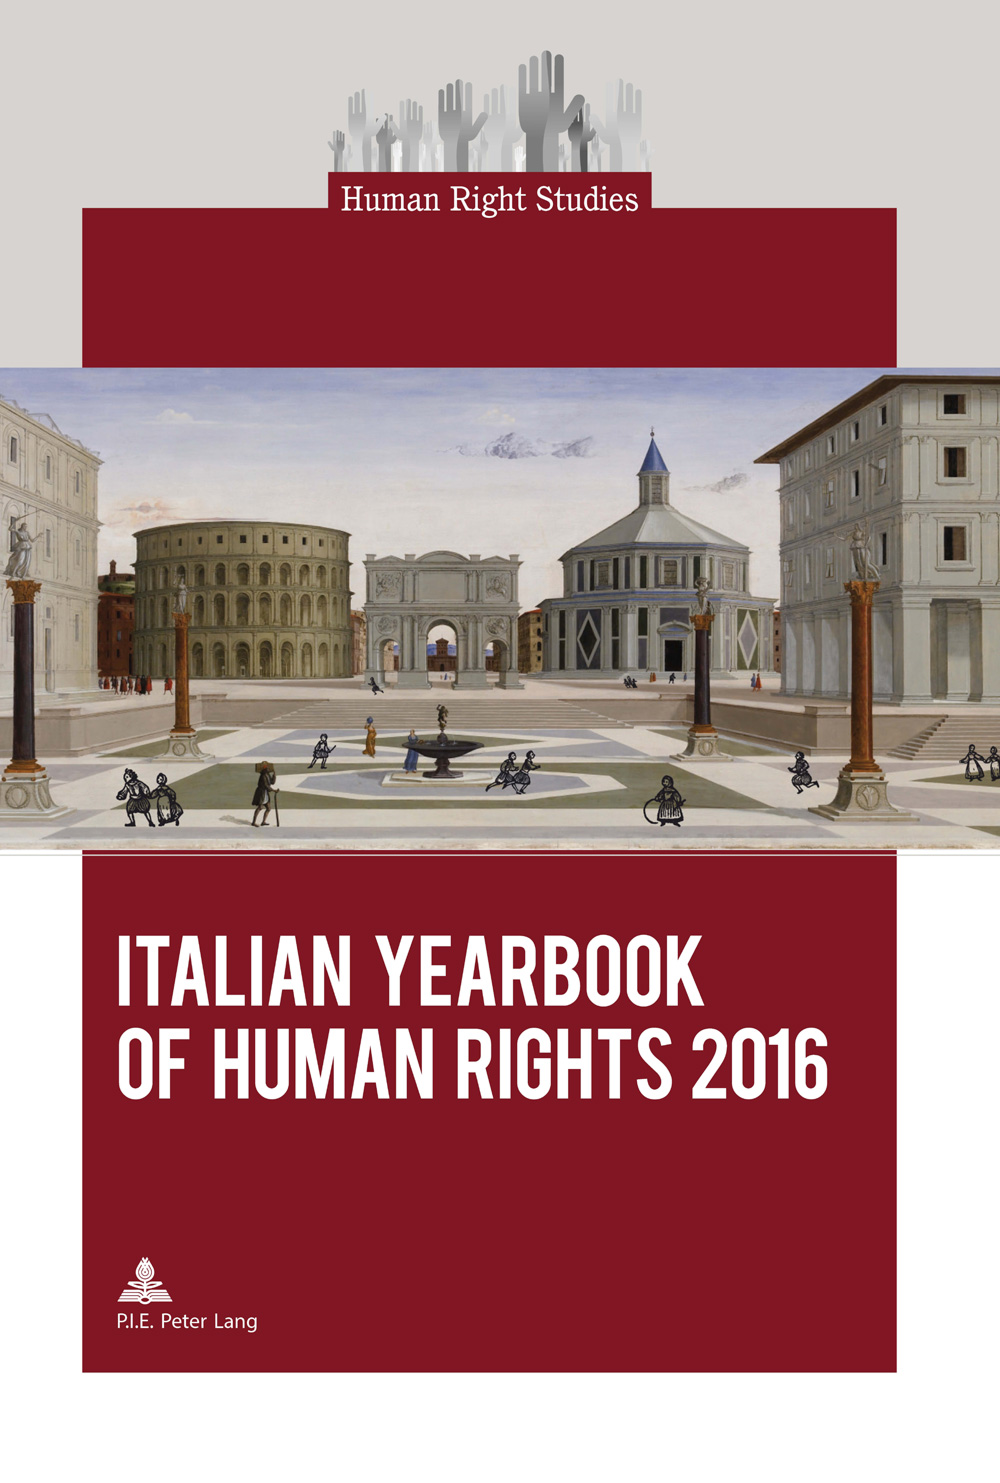 Italian Yearbook of Human Rights 2016